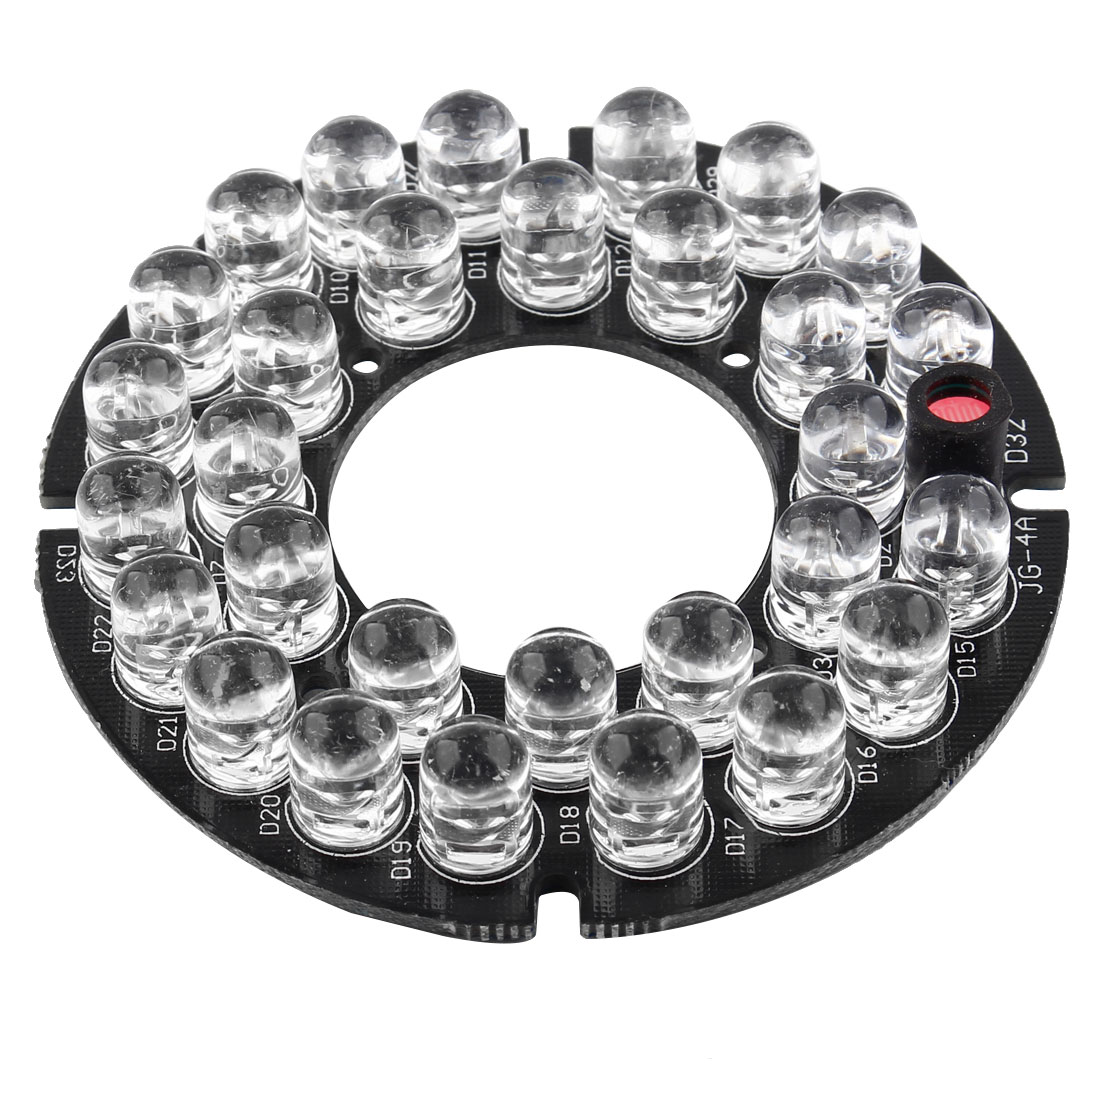 "2 1/8"" Round Board 24 IR LED Lamp for CCTV Security Camera"